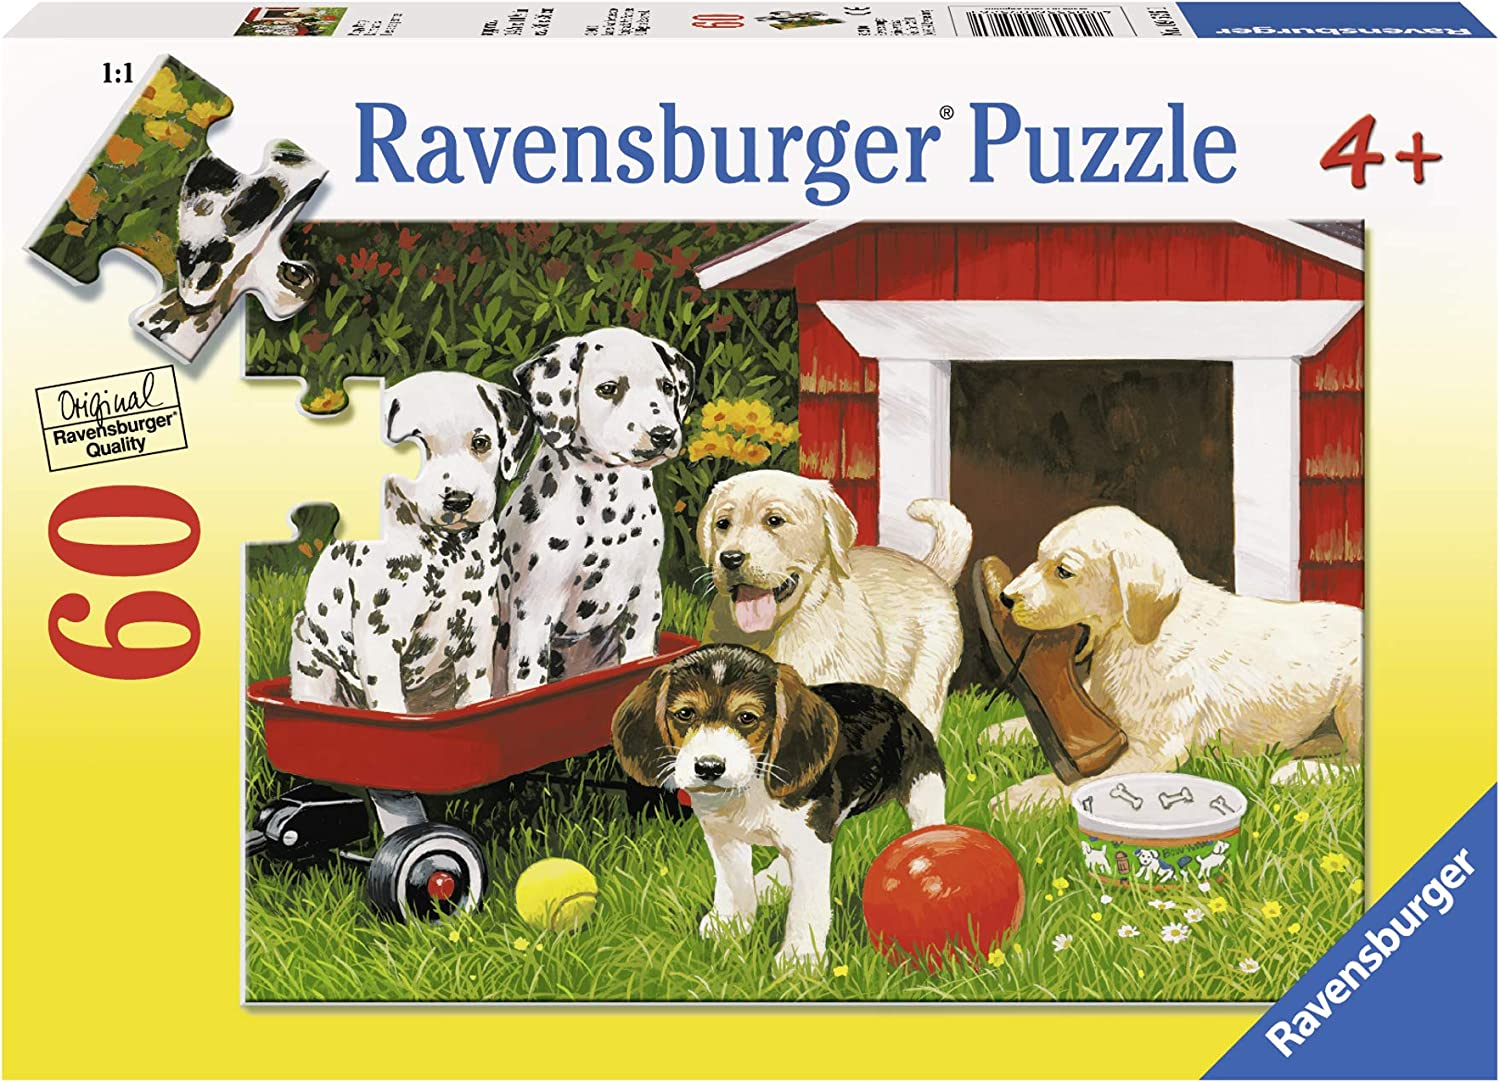 Ravensburger Puppy Party - 60 Piece Jigsaw Puzzle for Kids – Every Piece is Unique, Pieces Fit Together Perfectly